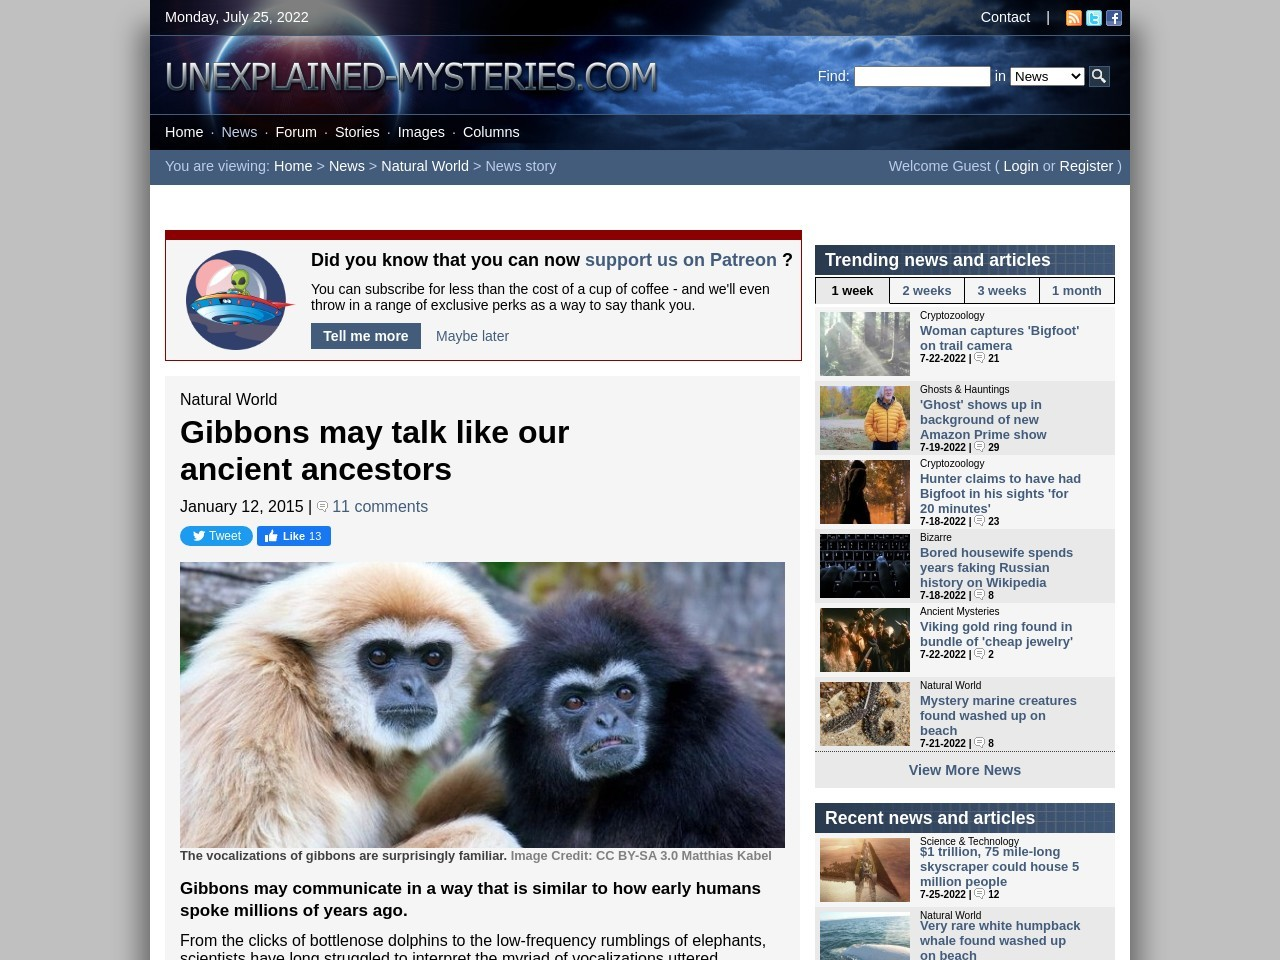 Gibbons may talk like our ancient ancestors